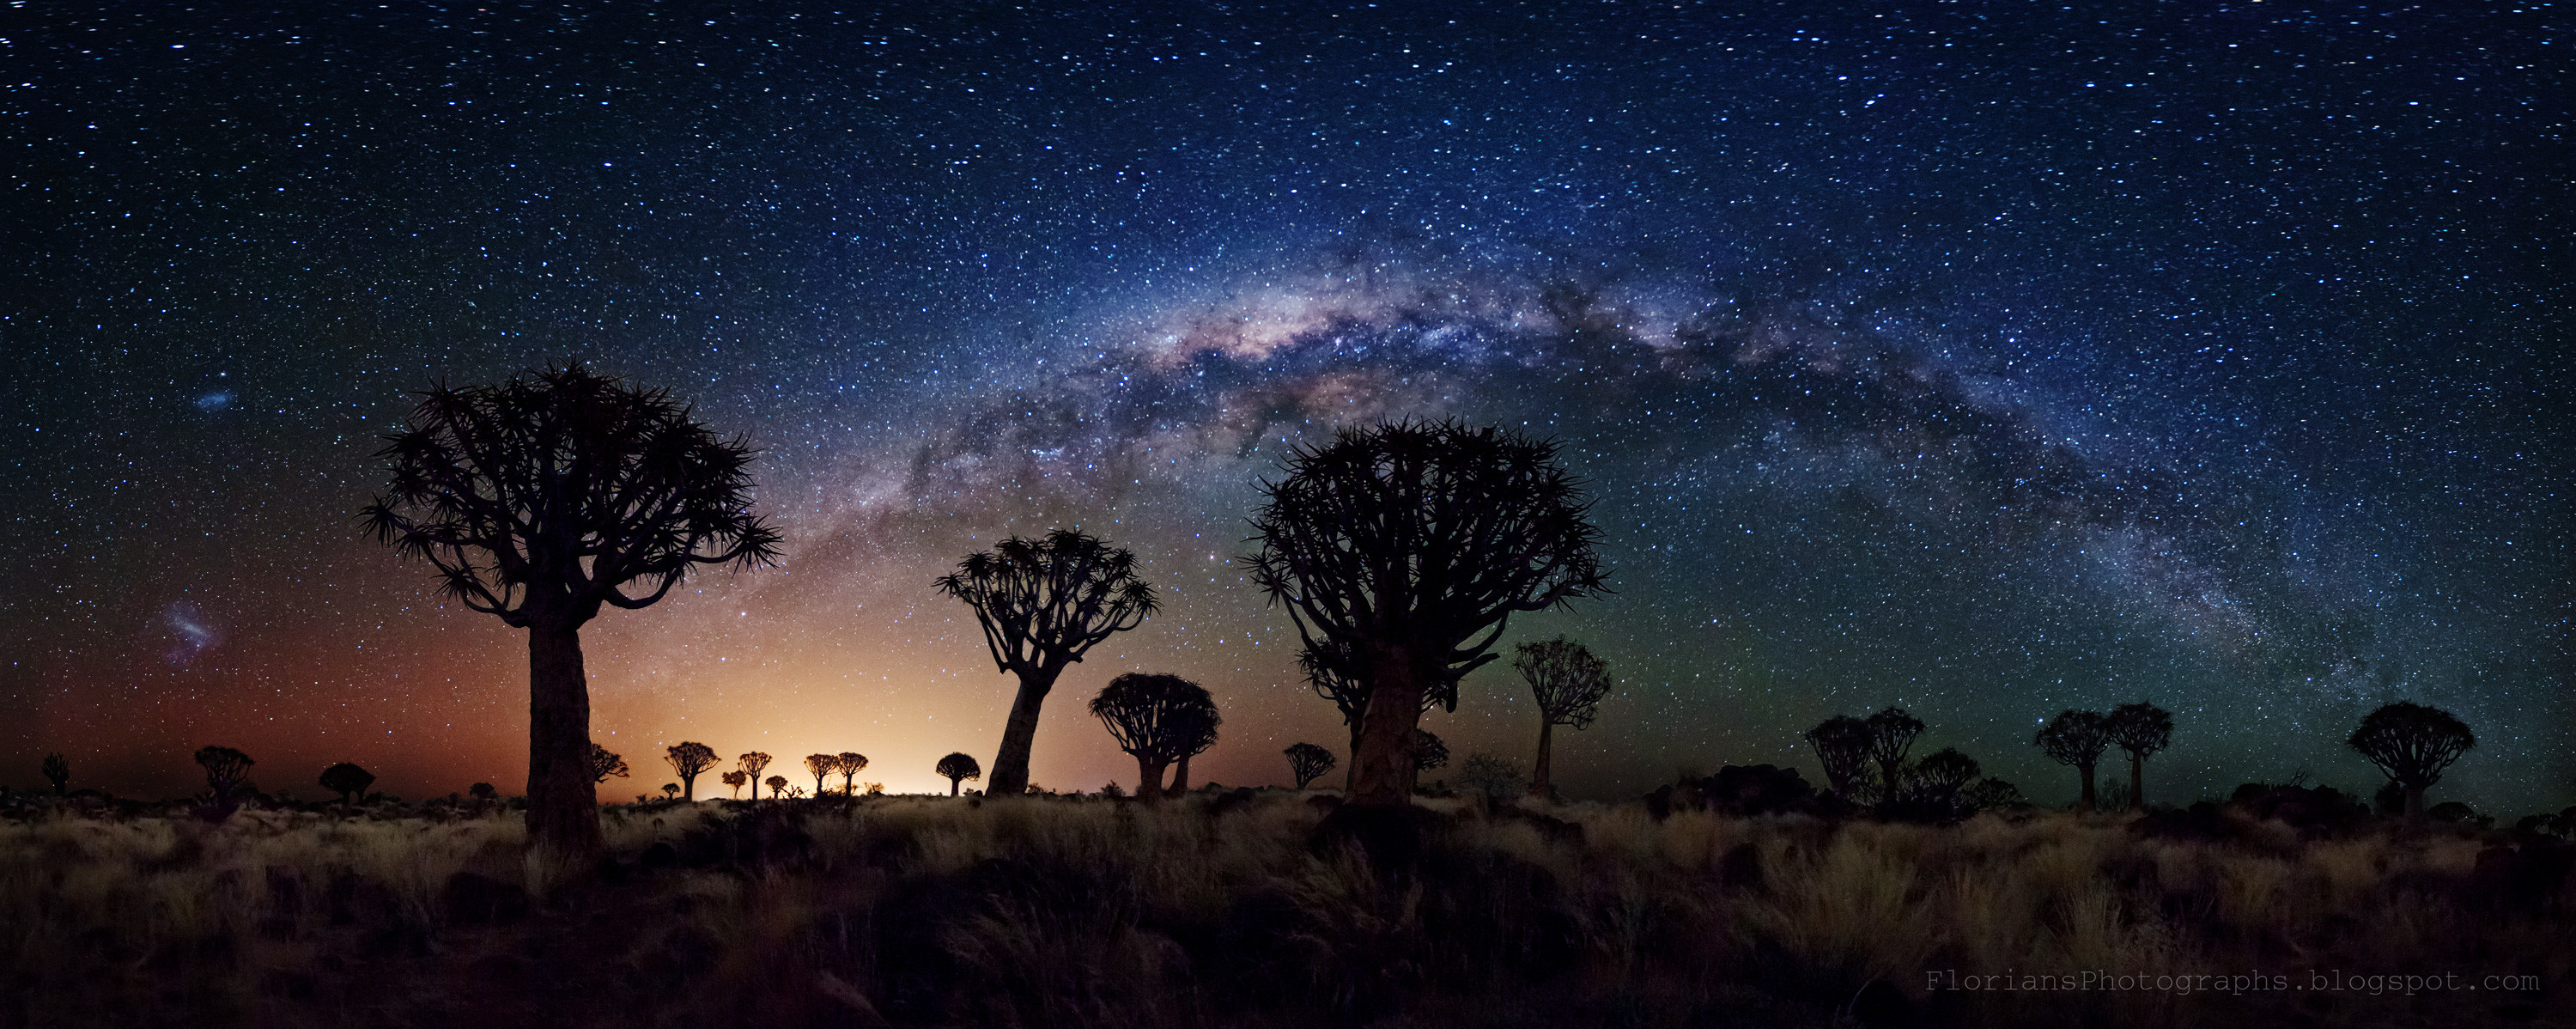 Milky Way over Quiver Trees (widescreen)